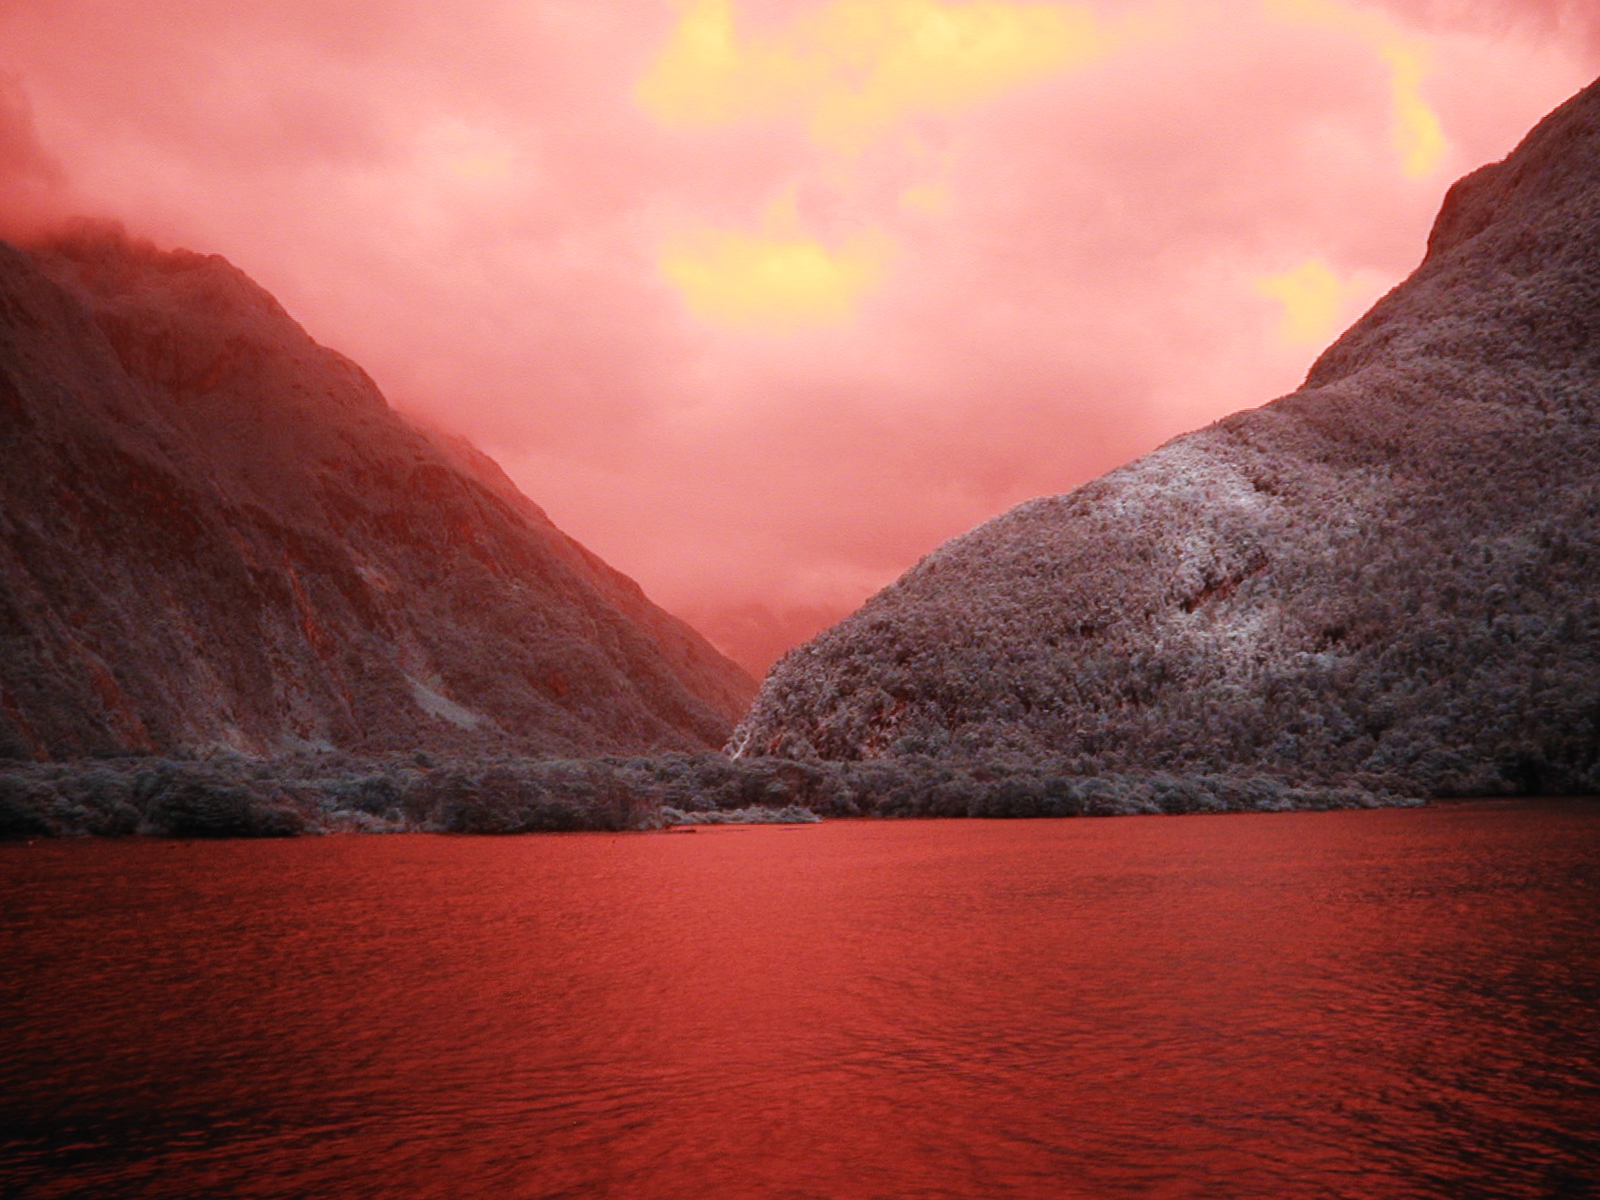 Milford_Red_Color_001.jpg